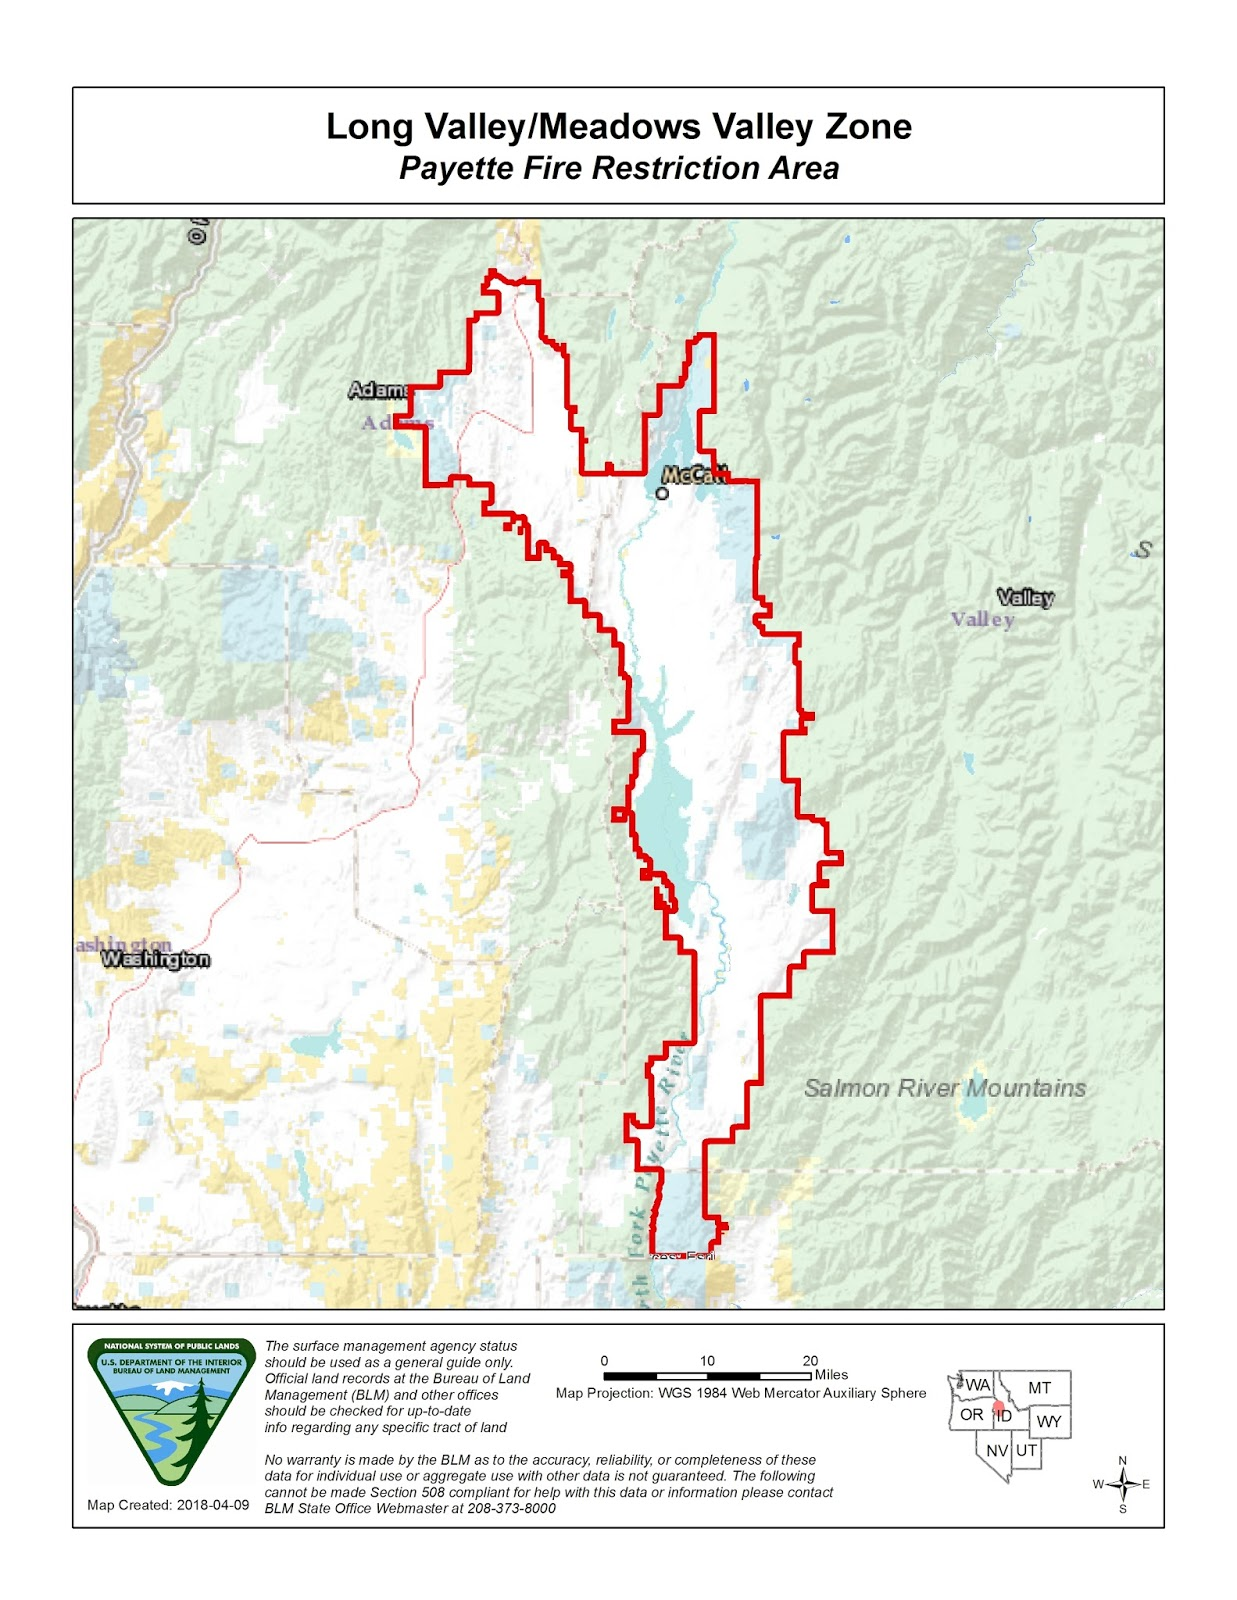 Idaho Fire Information Payette Fire Restrictions Area